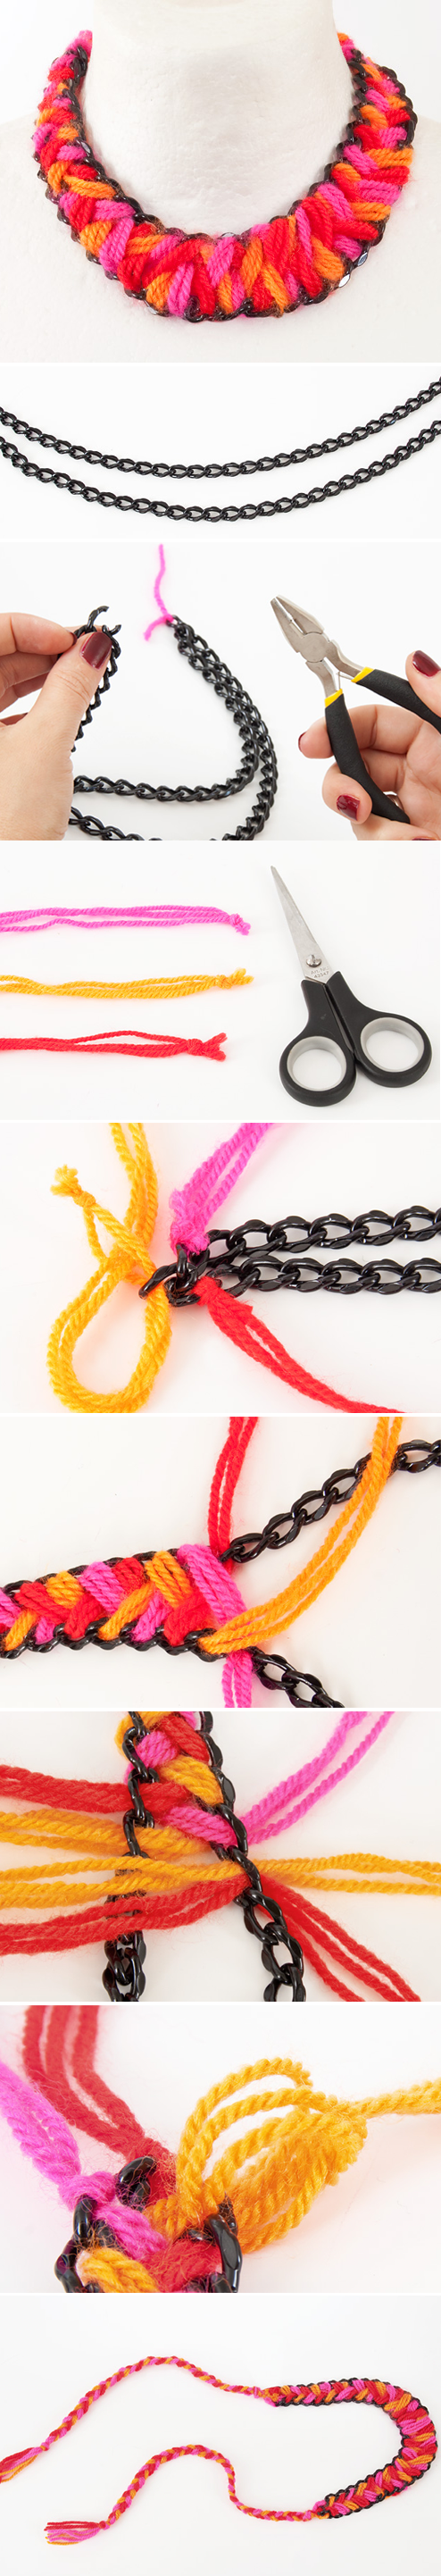 Ethnic Wool Necklace - srep by step tutorial